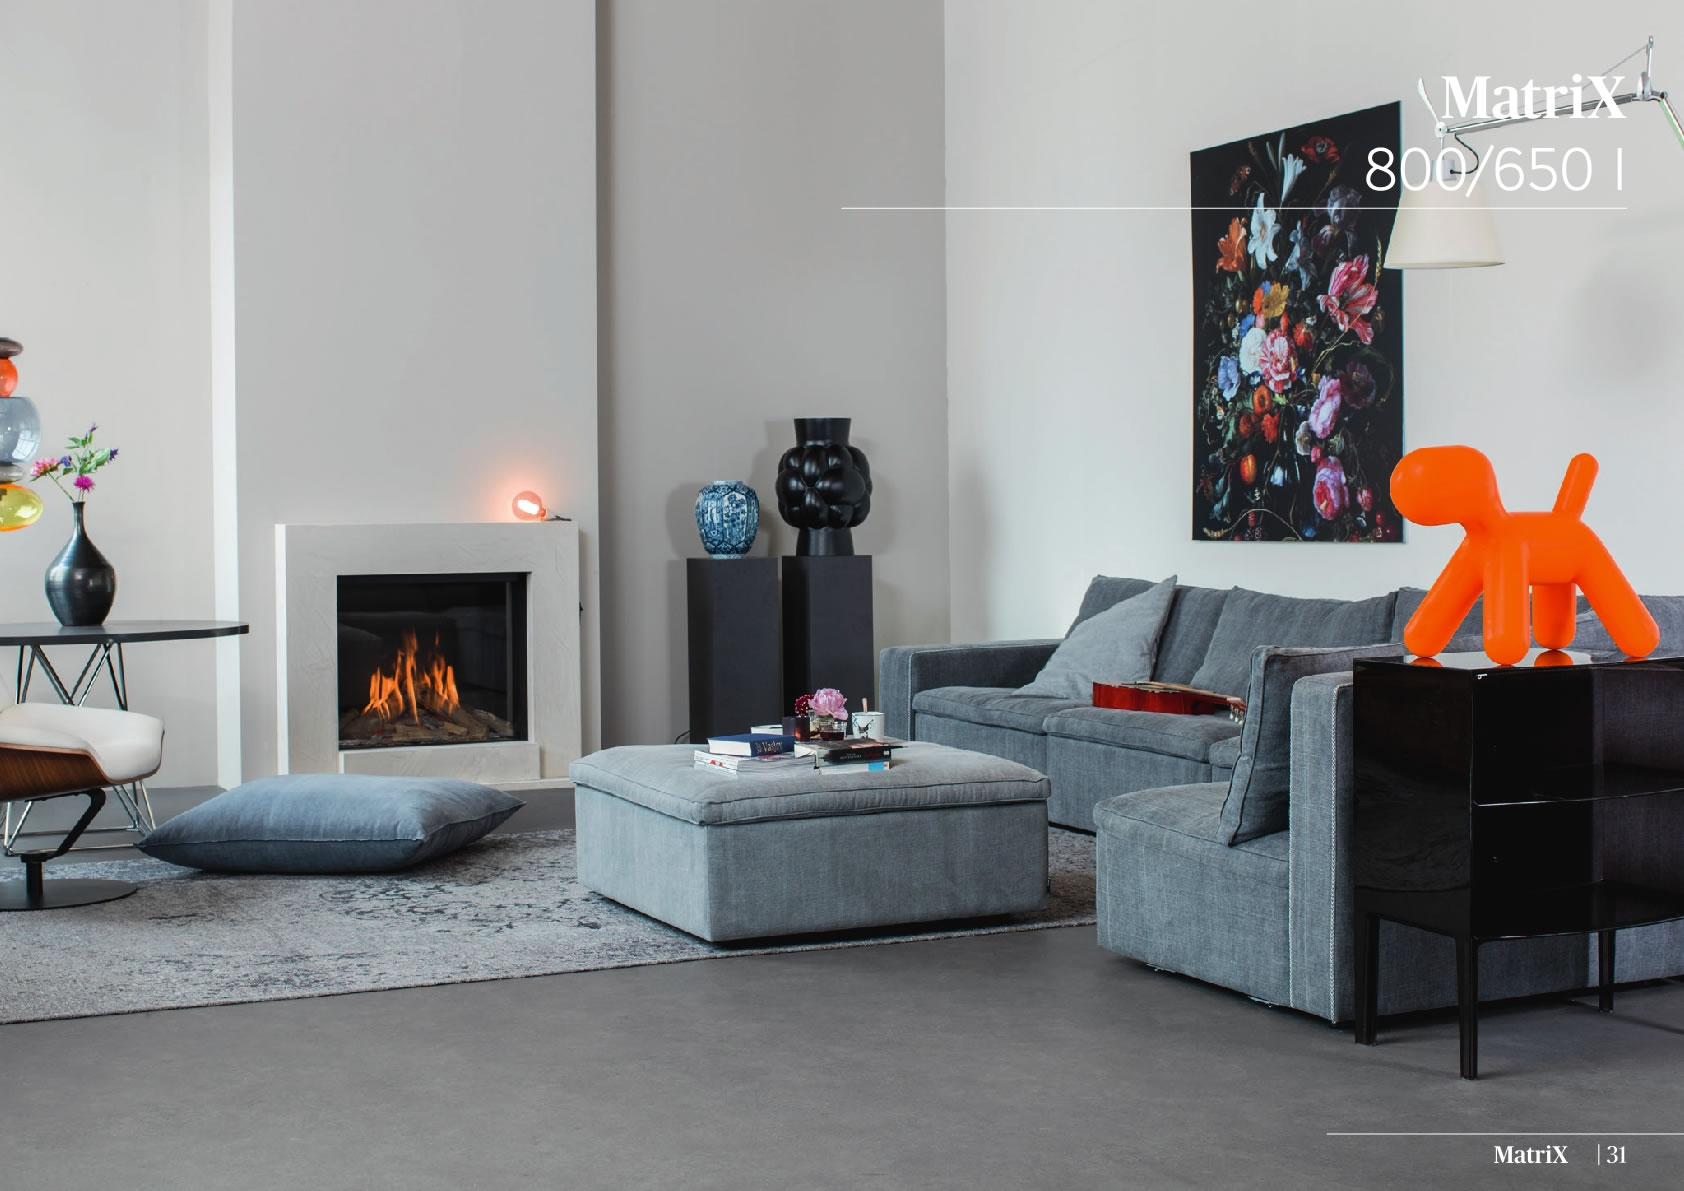 Faber Natural Gas Fireplaces - Matrix 800 / 650 I